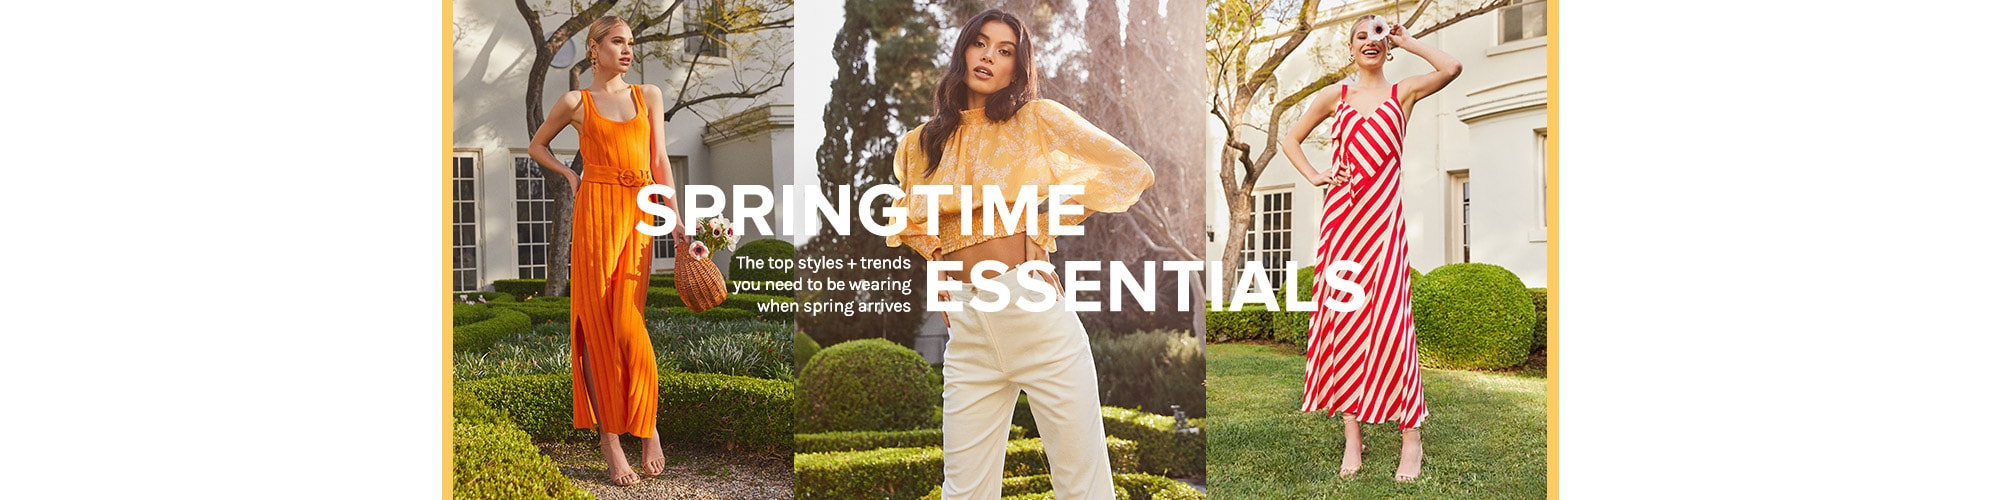 Springtime Essentials. The top styles + trends you need to be wearing when spring arrives. Shop the Edit.